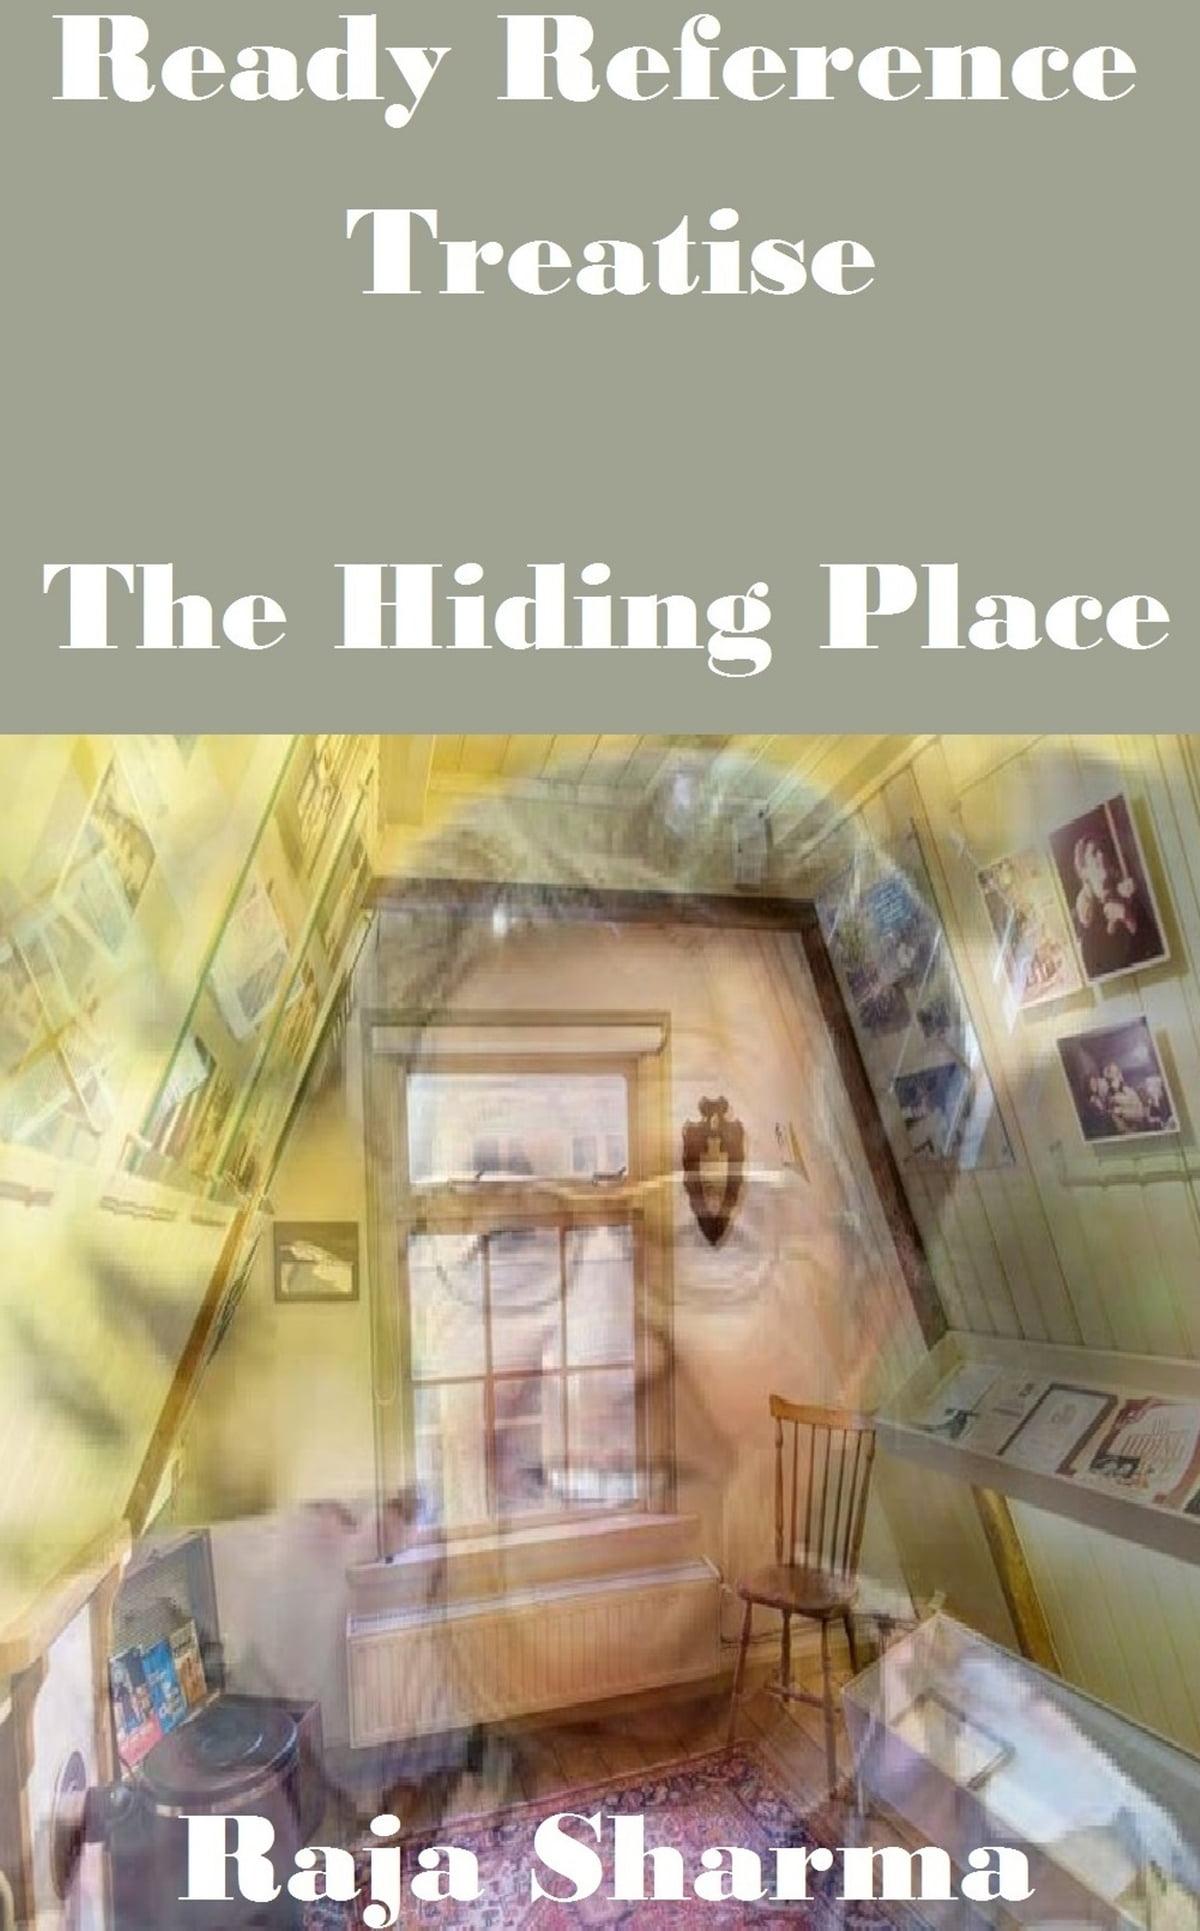 the hiding place audiobook chapter 1